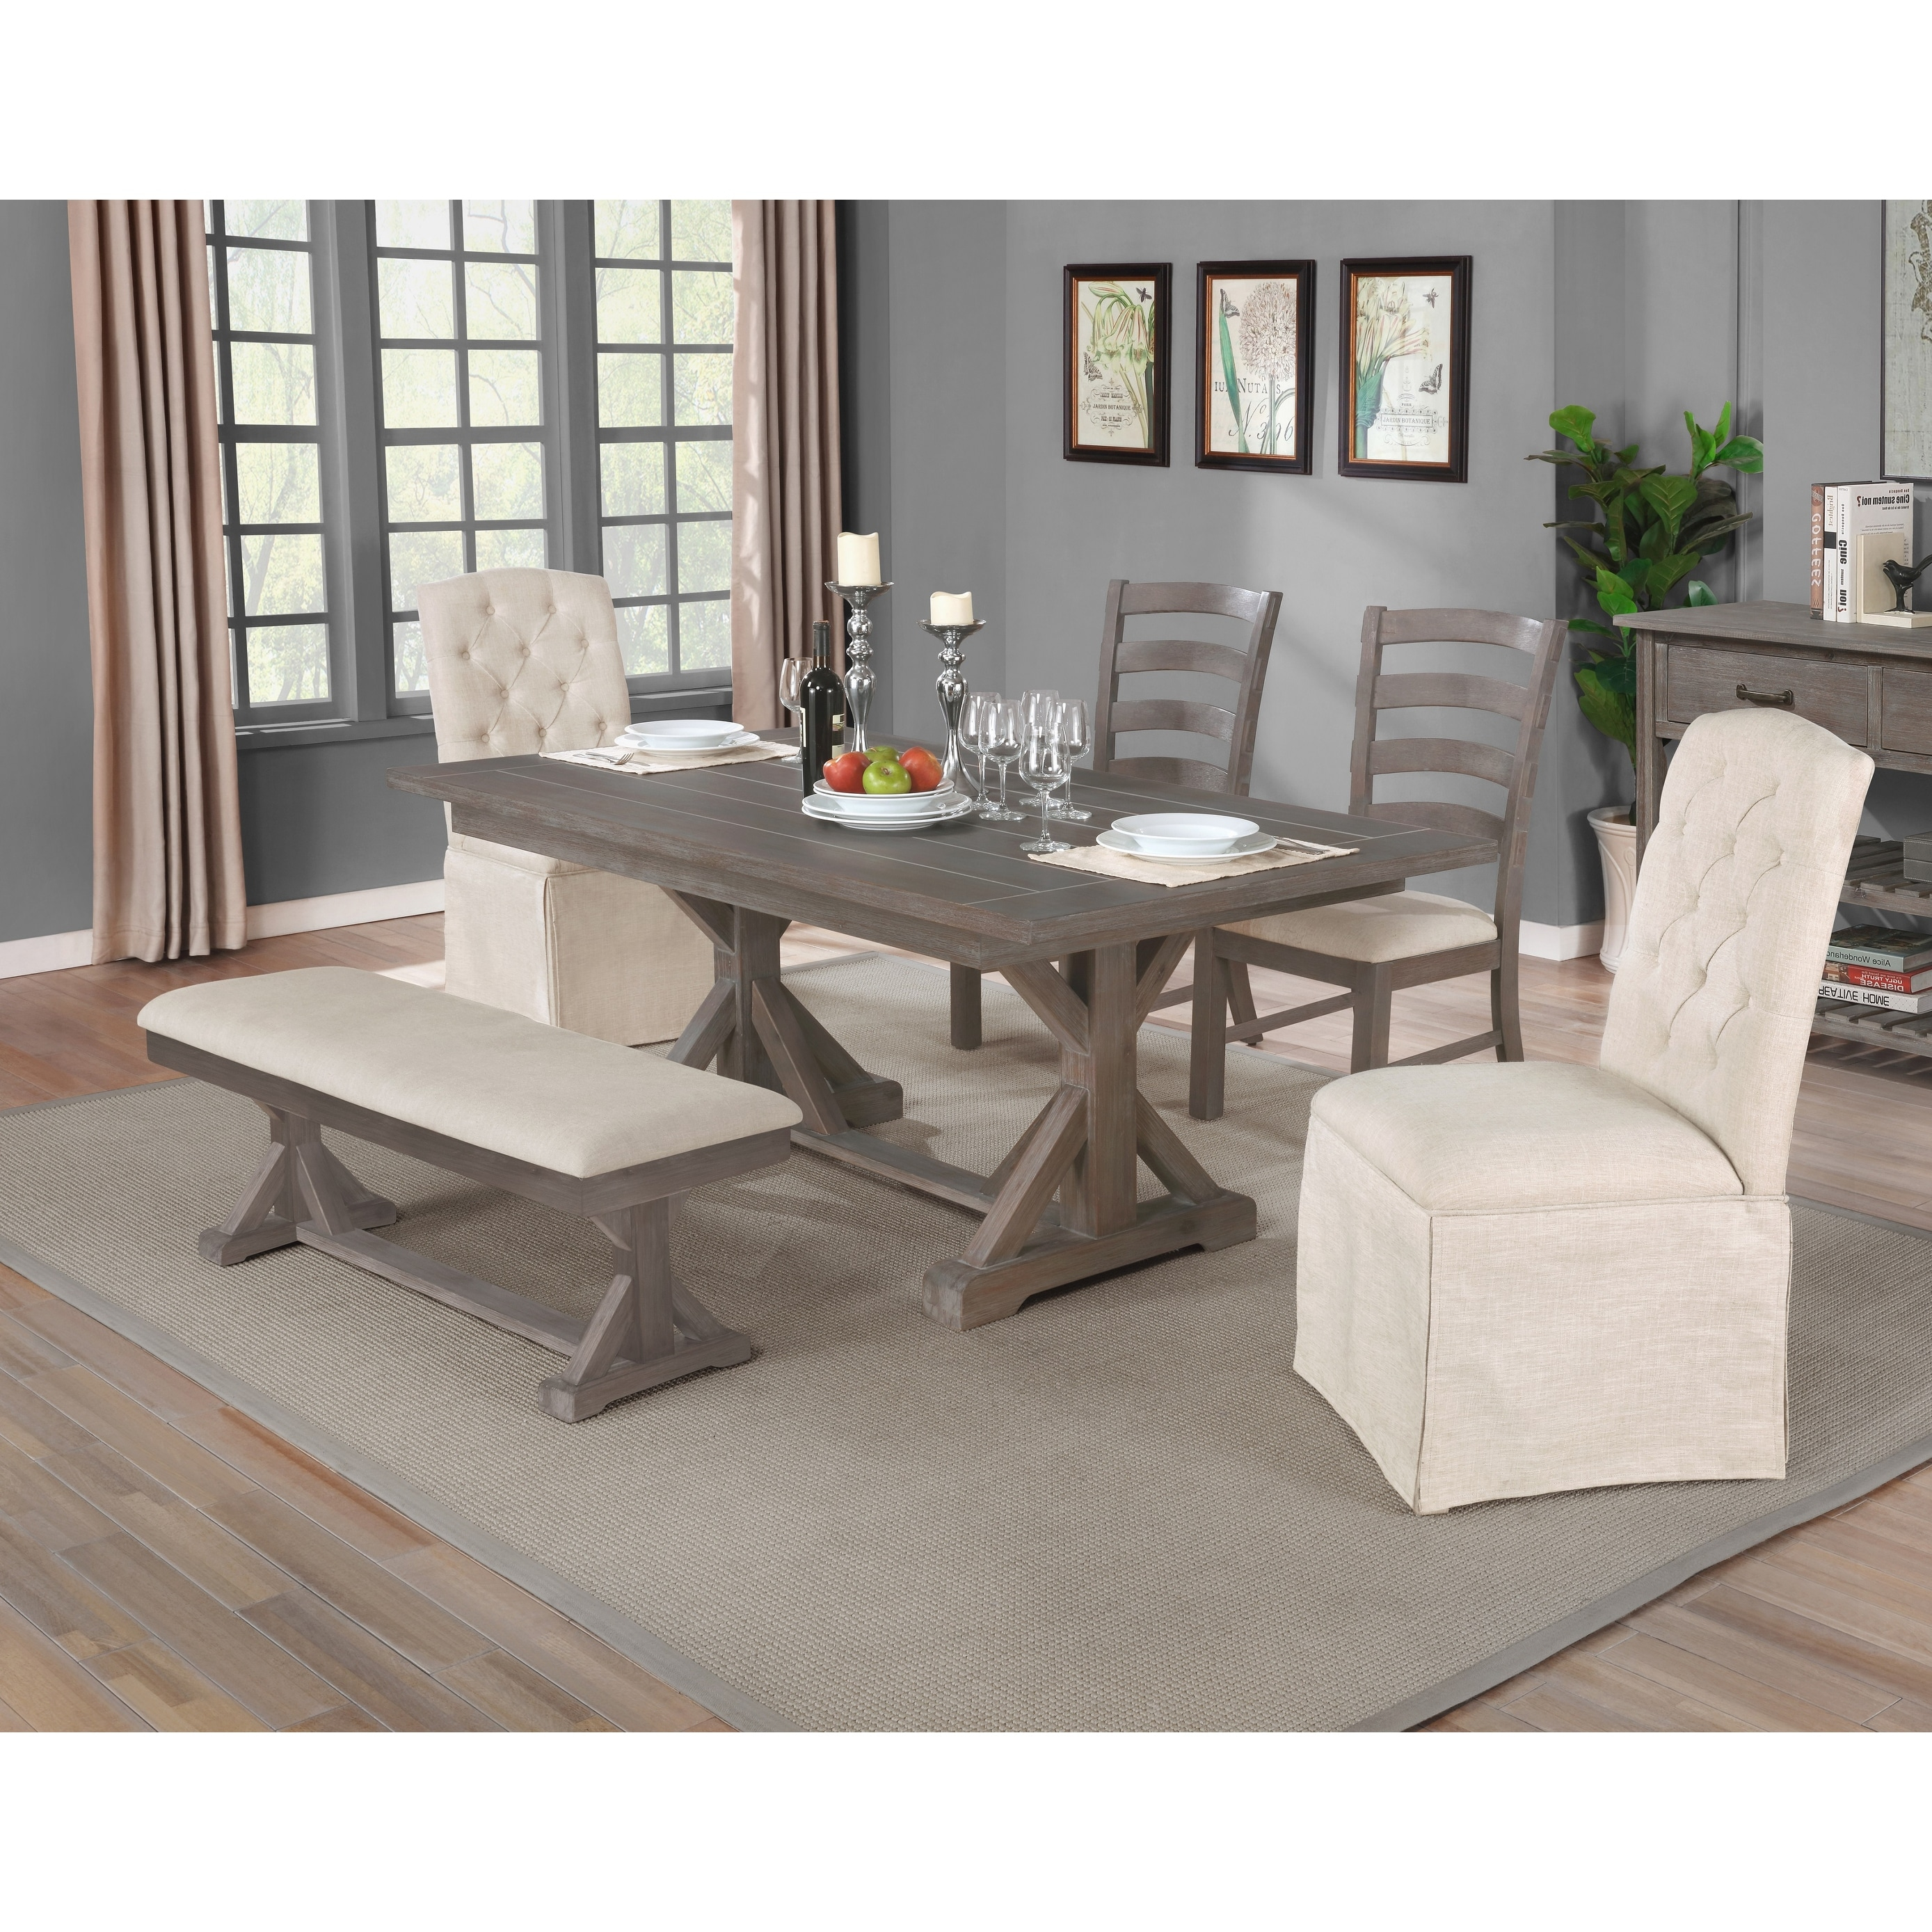 Best Quality Furniture 6 Piece Rustic Grey Trestle Dining Set